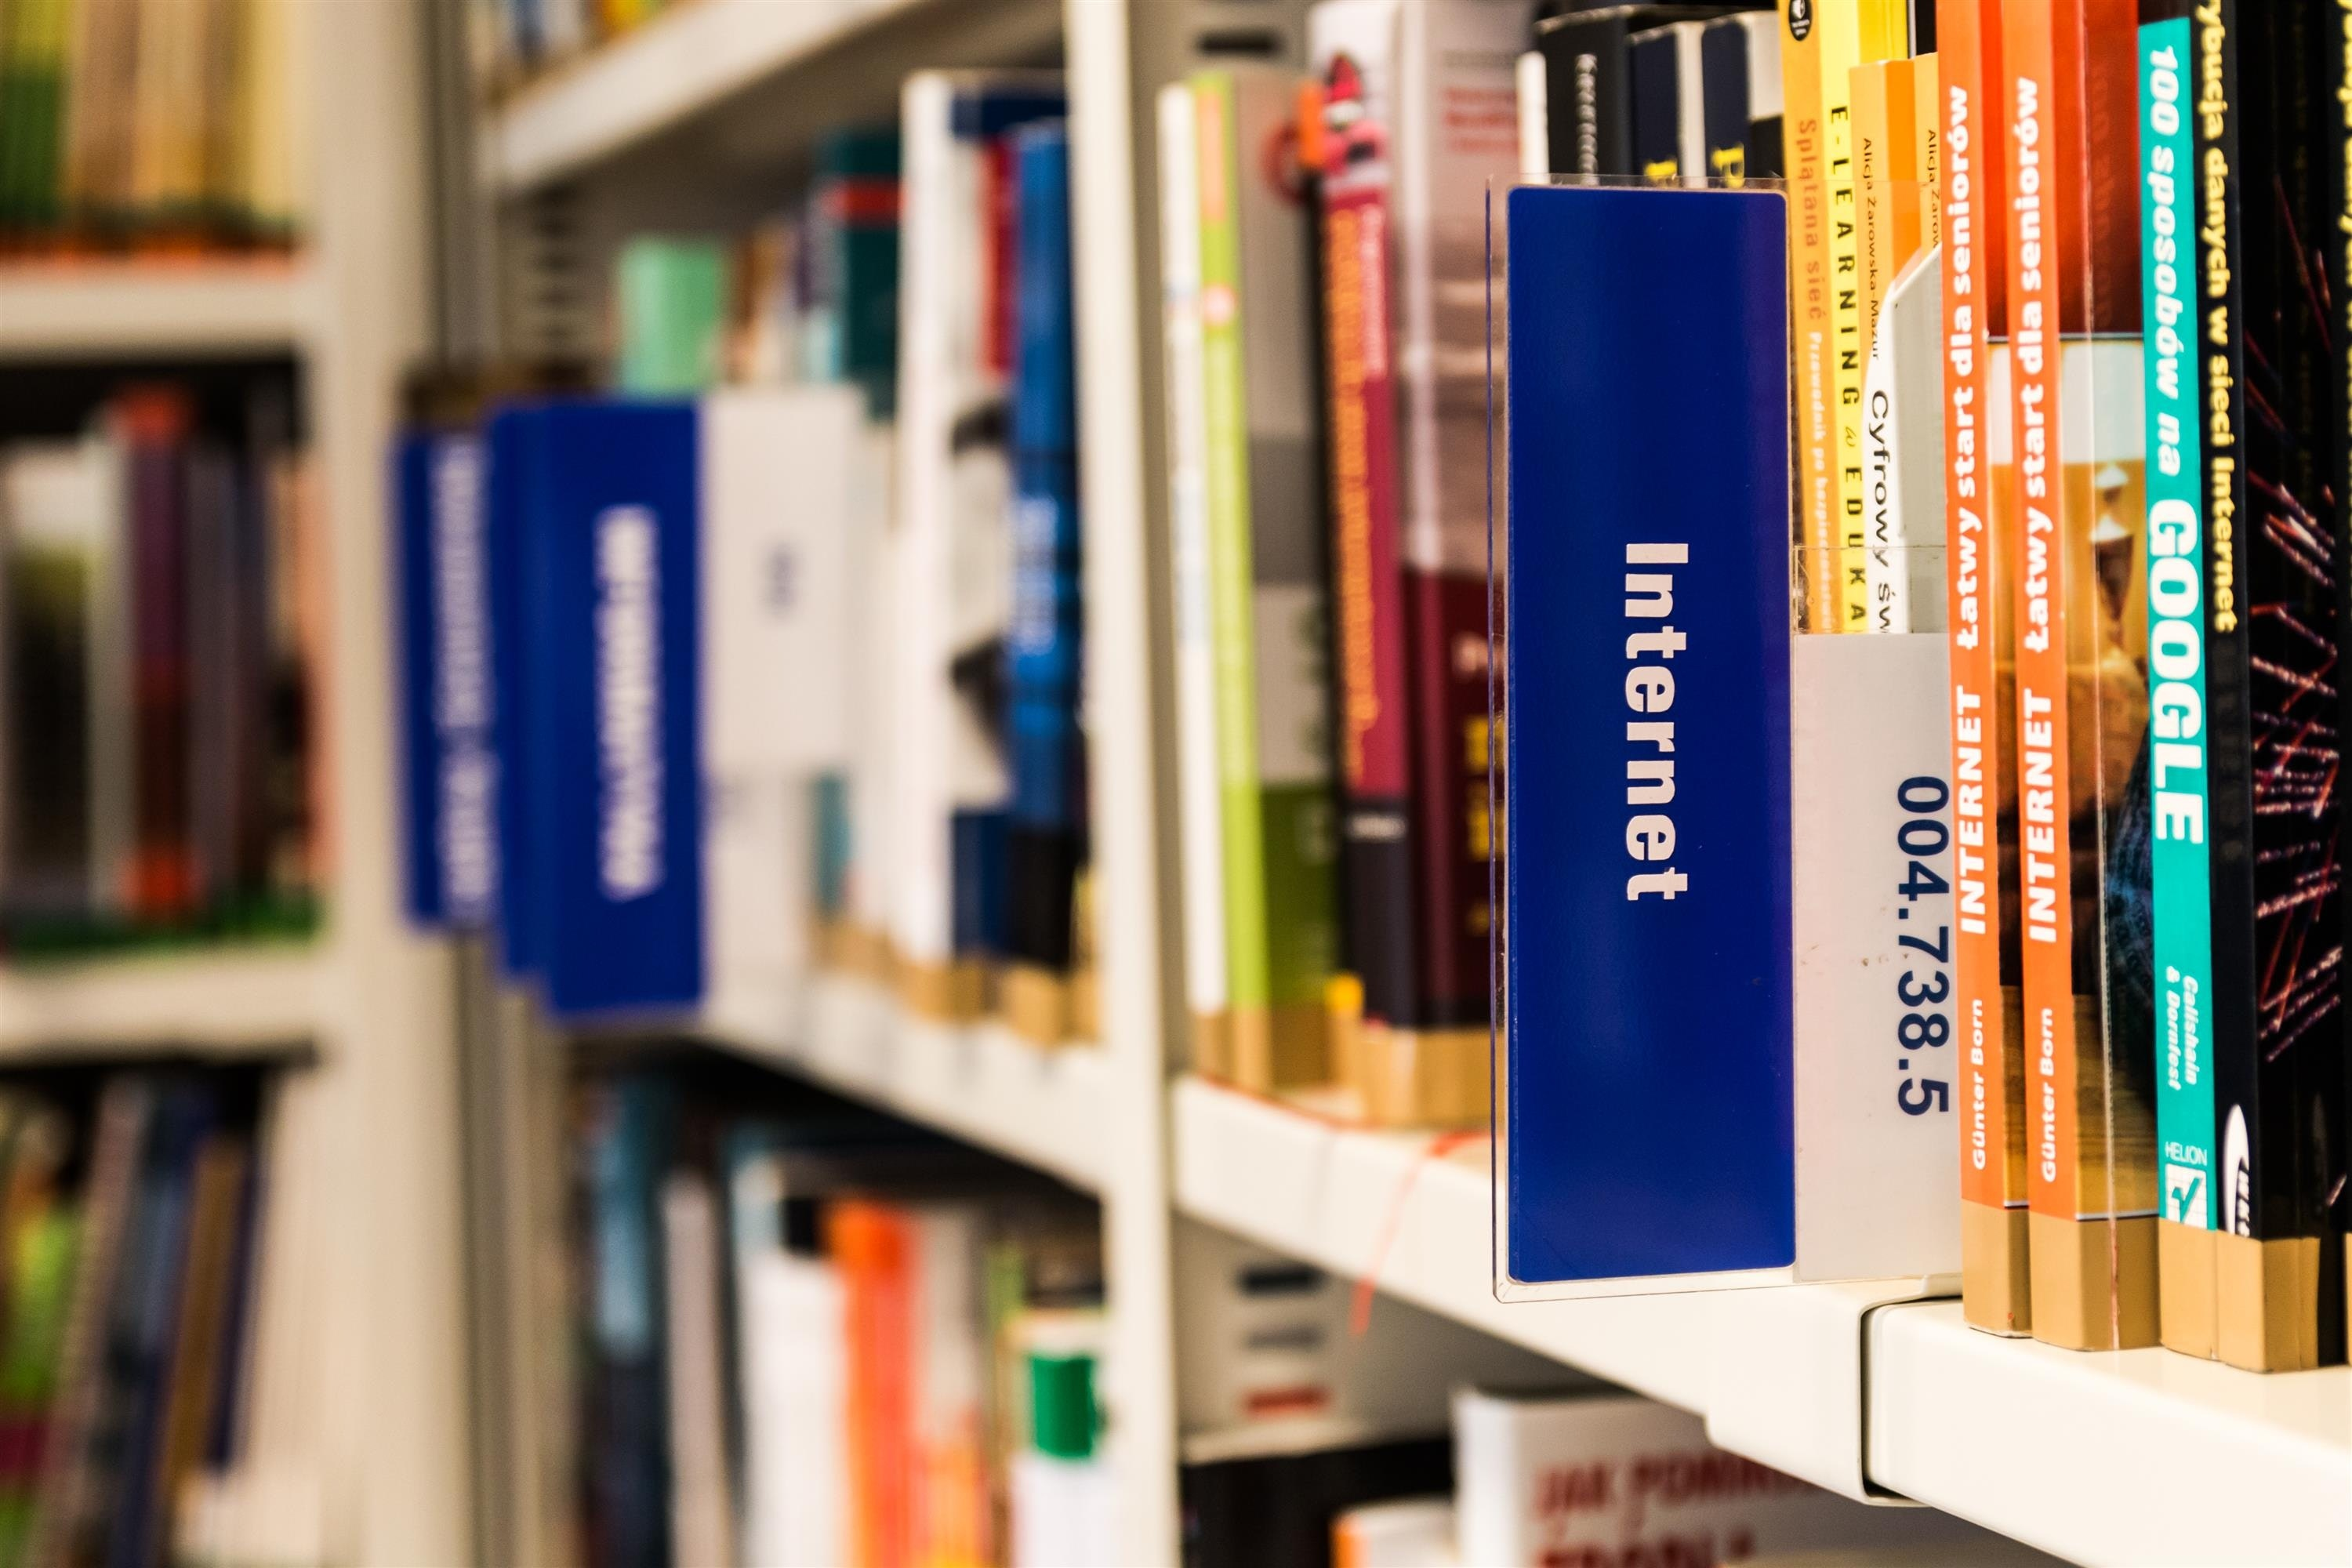 Books on shelf in library photo